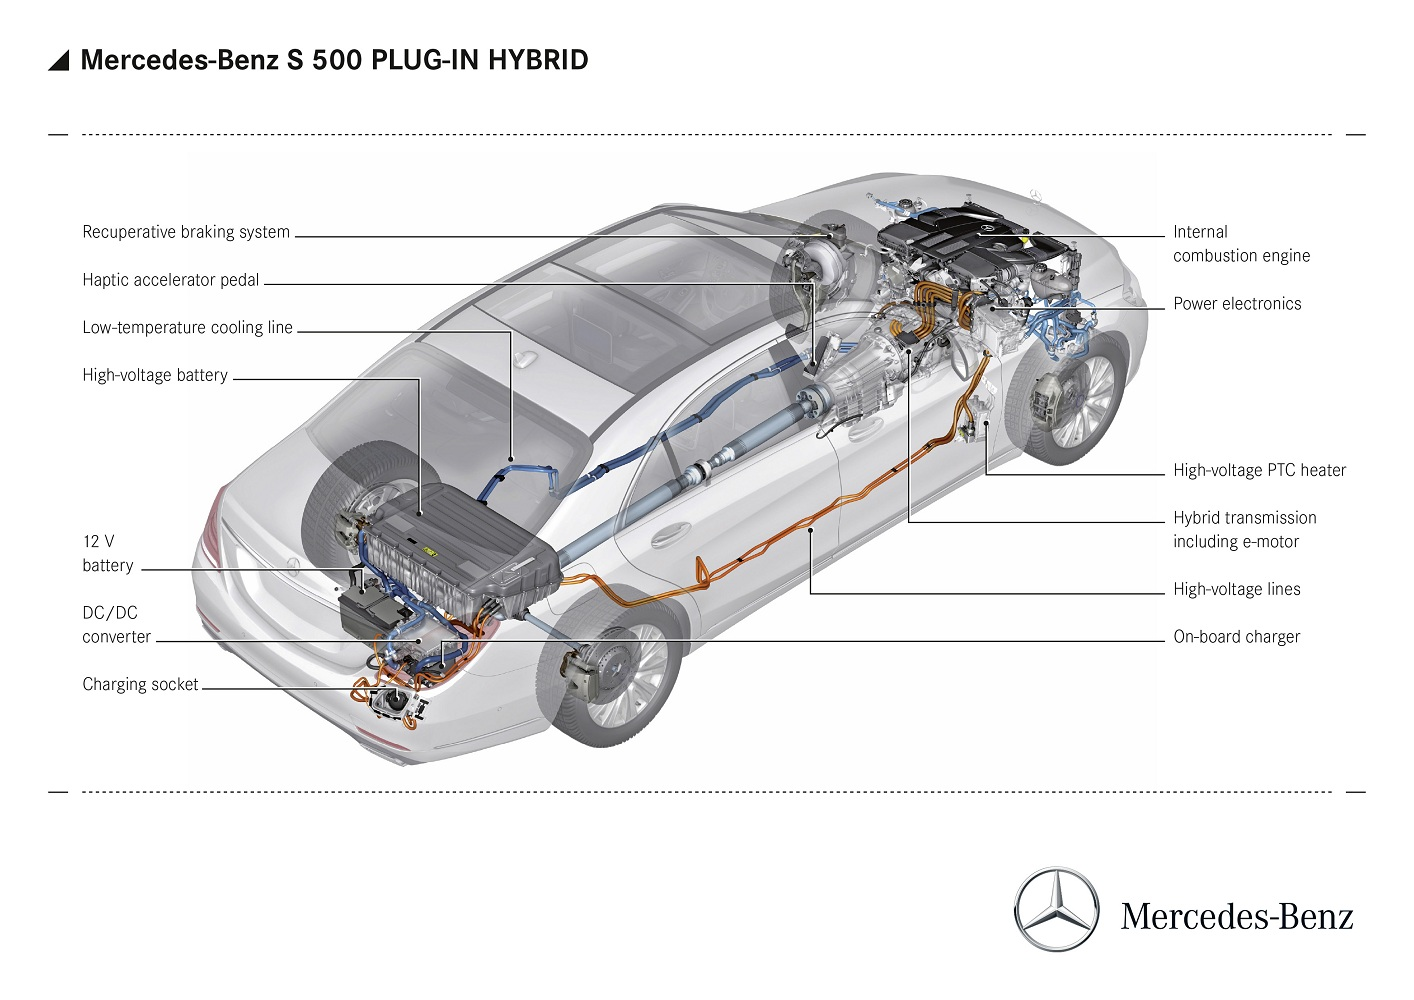 Mercedes Benz S 500 Hybrid Plug-in